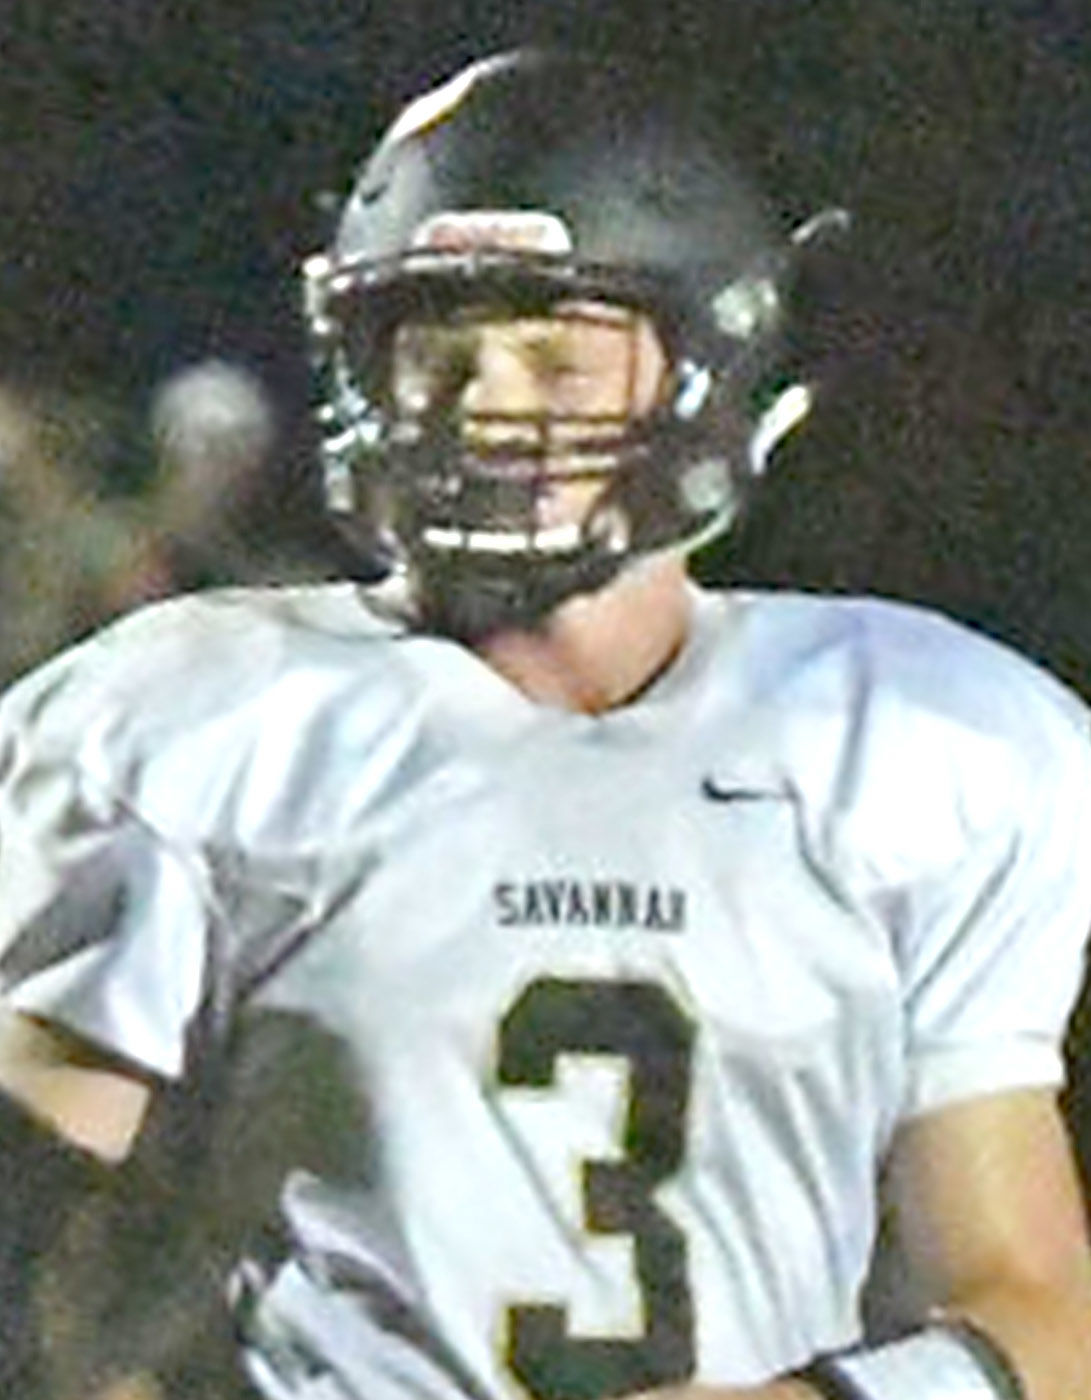 Athlete of the Week for Sept. 28